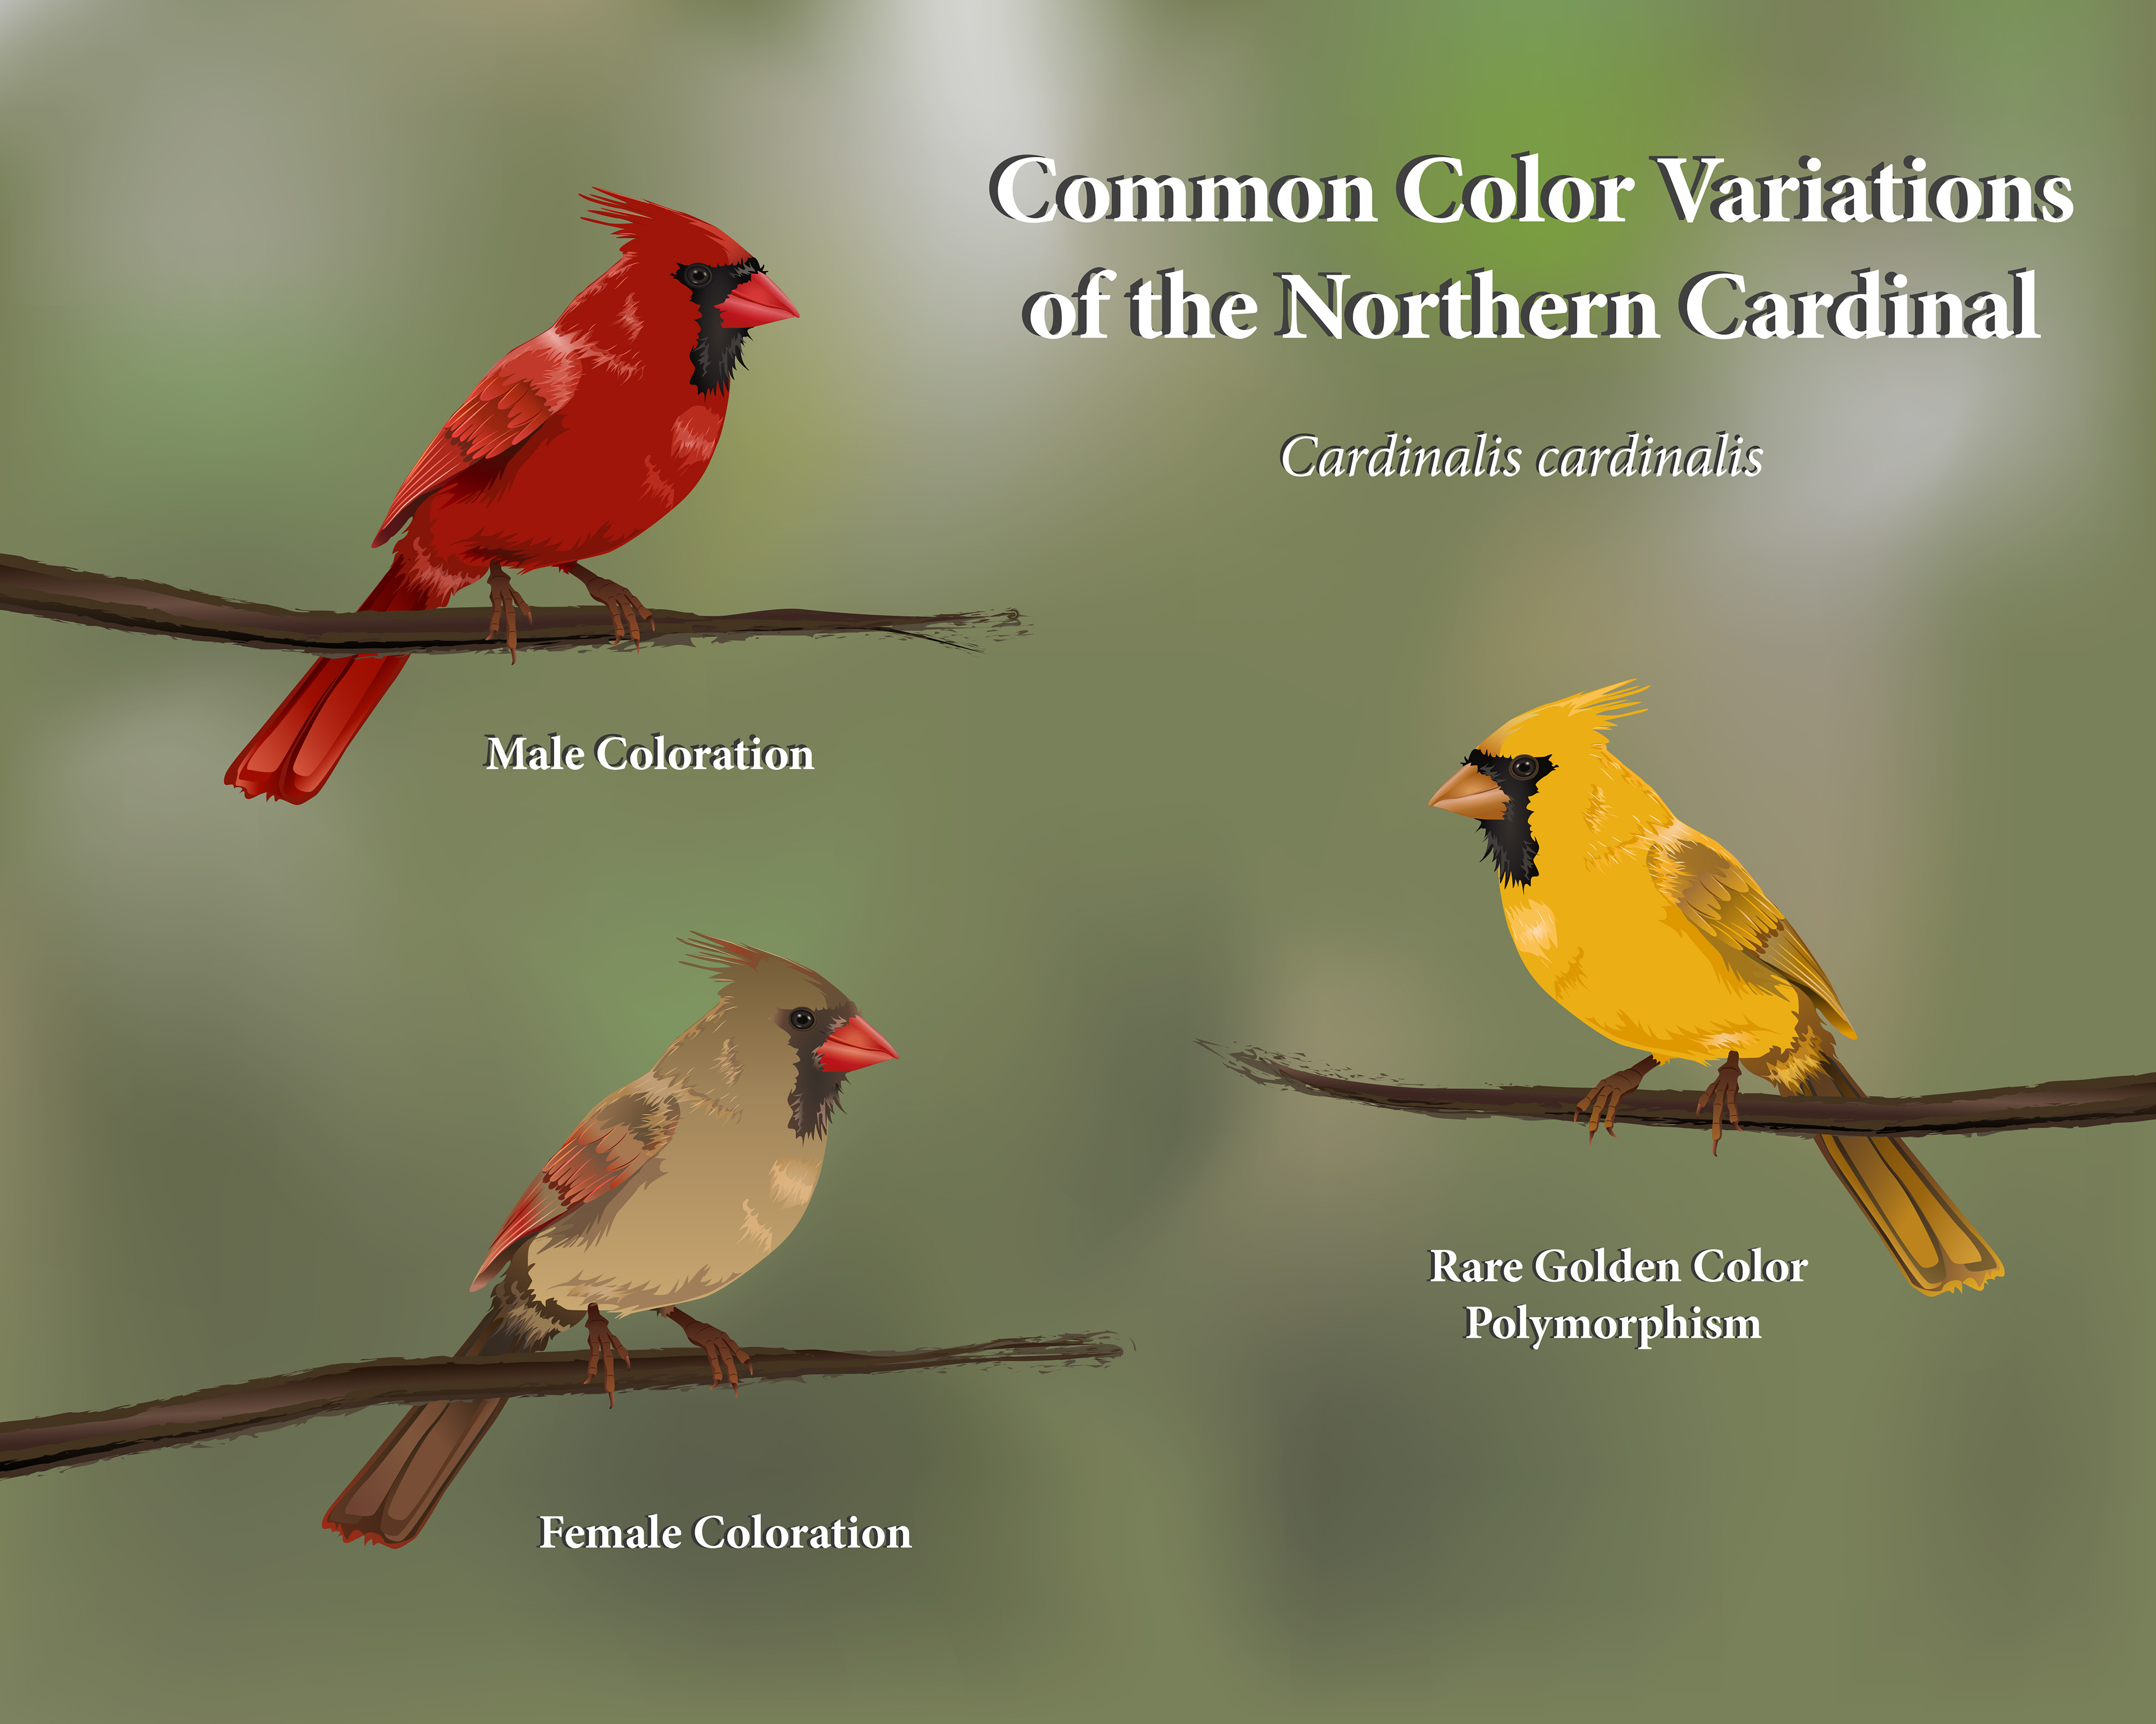 Mountain Bluebird as well E Bf B E Cf Da C Rw besides Cardinalz likewise Cardinal L also Wpid Wp Im. on male cardinal color